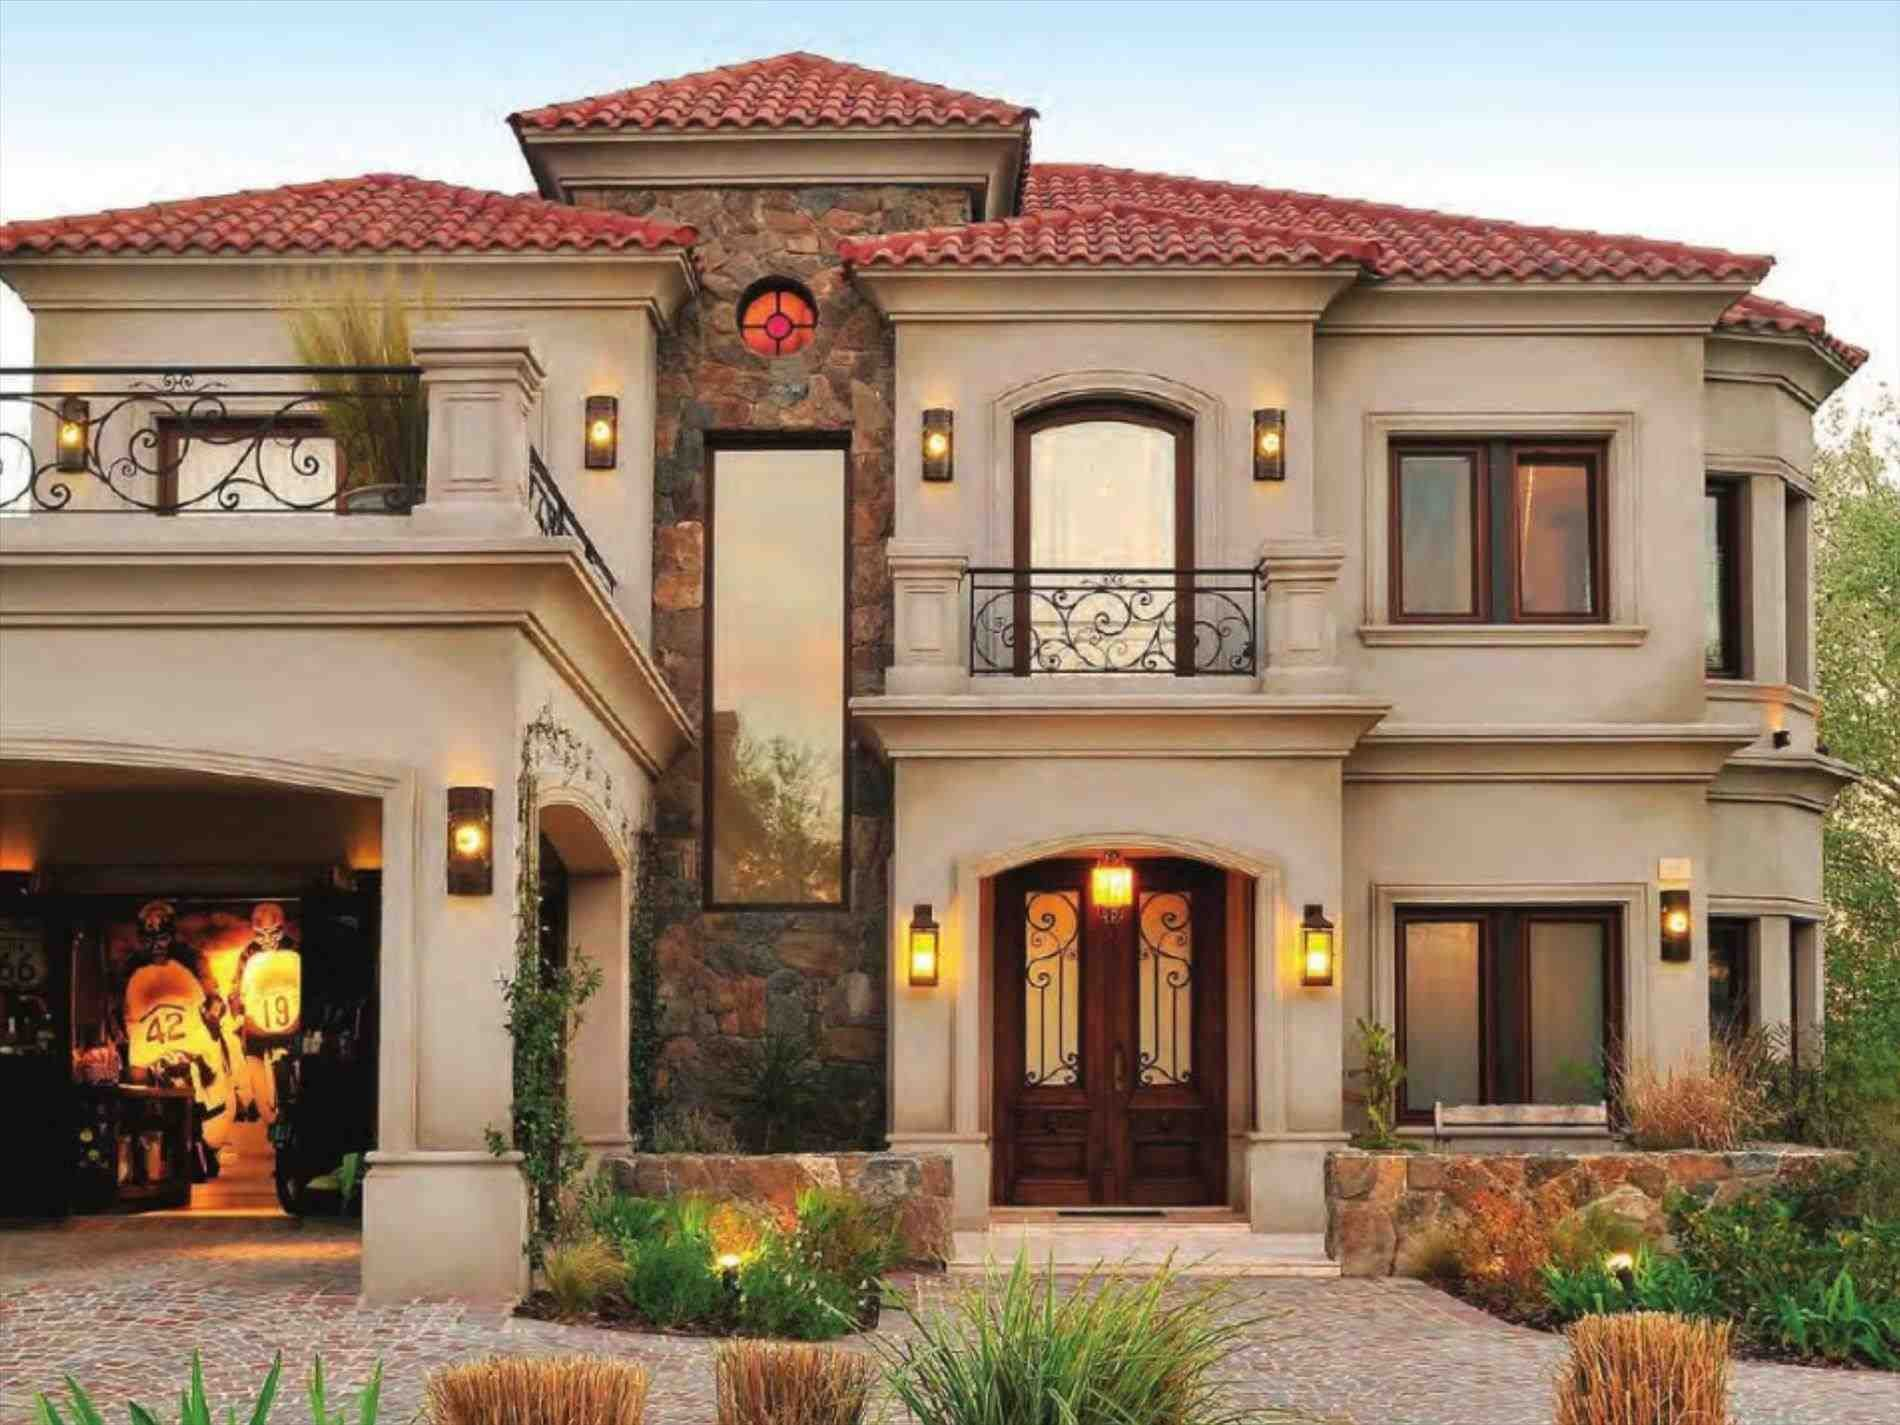 Mediterranean Style House Colors In 2018 Home Decor Ideas House